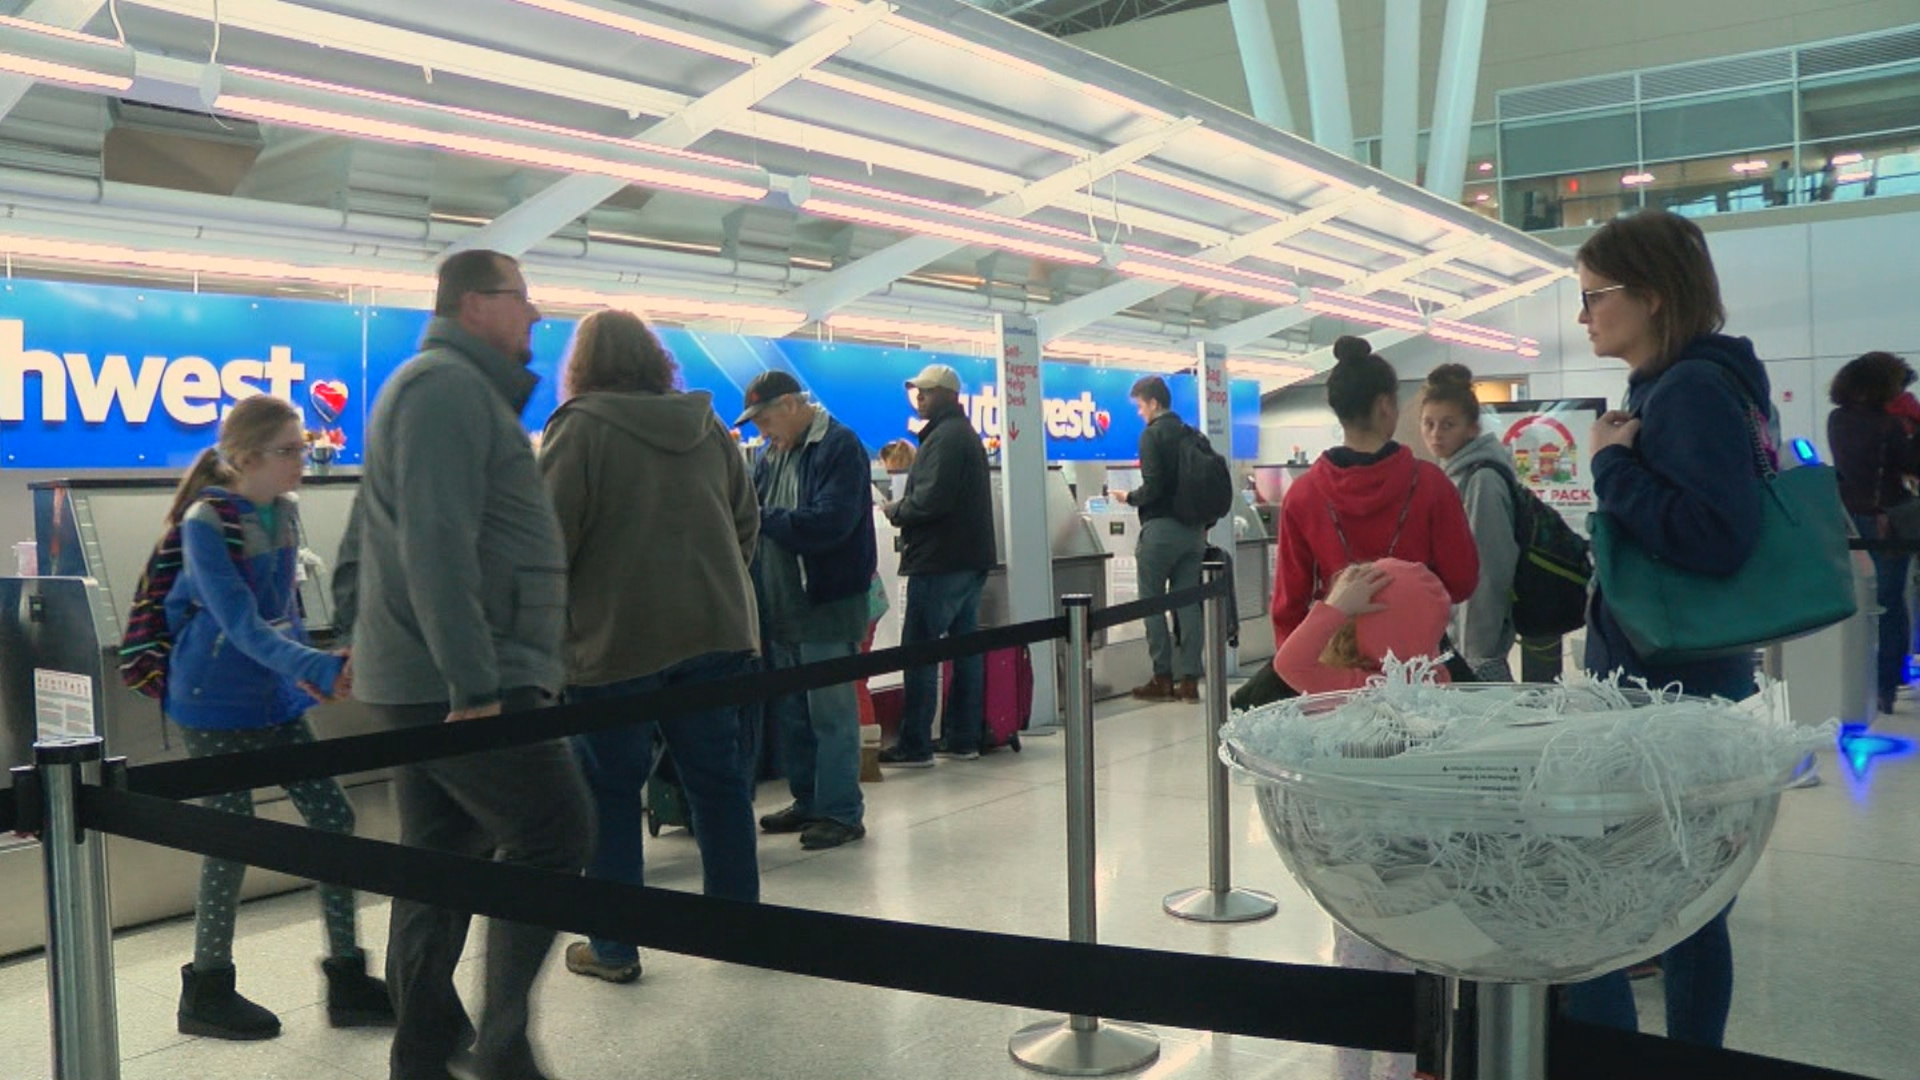 Busy traveling weekend expected at IND airport